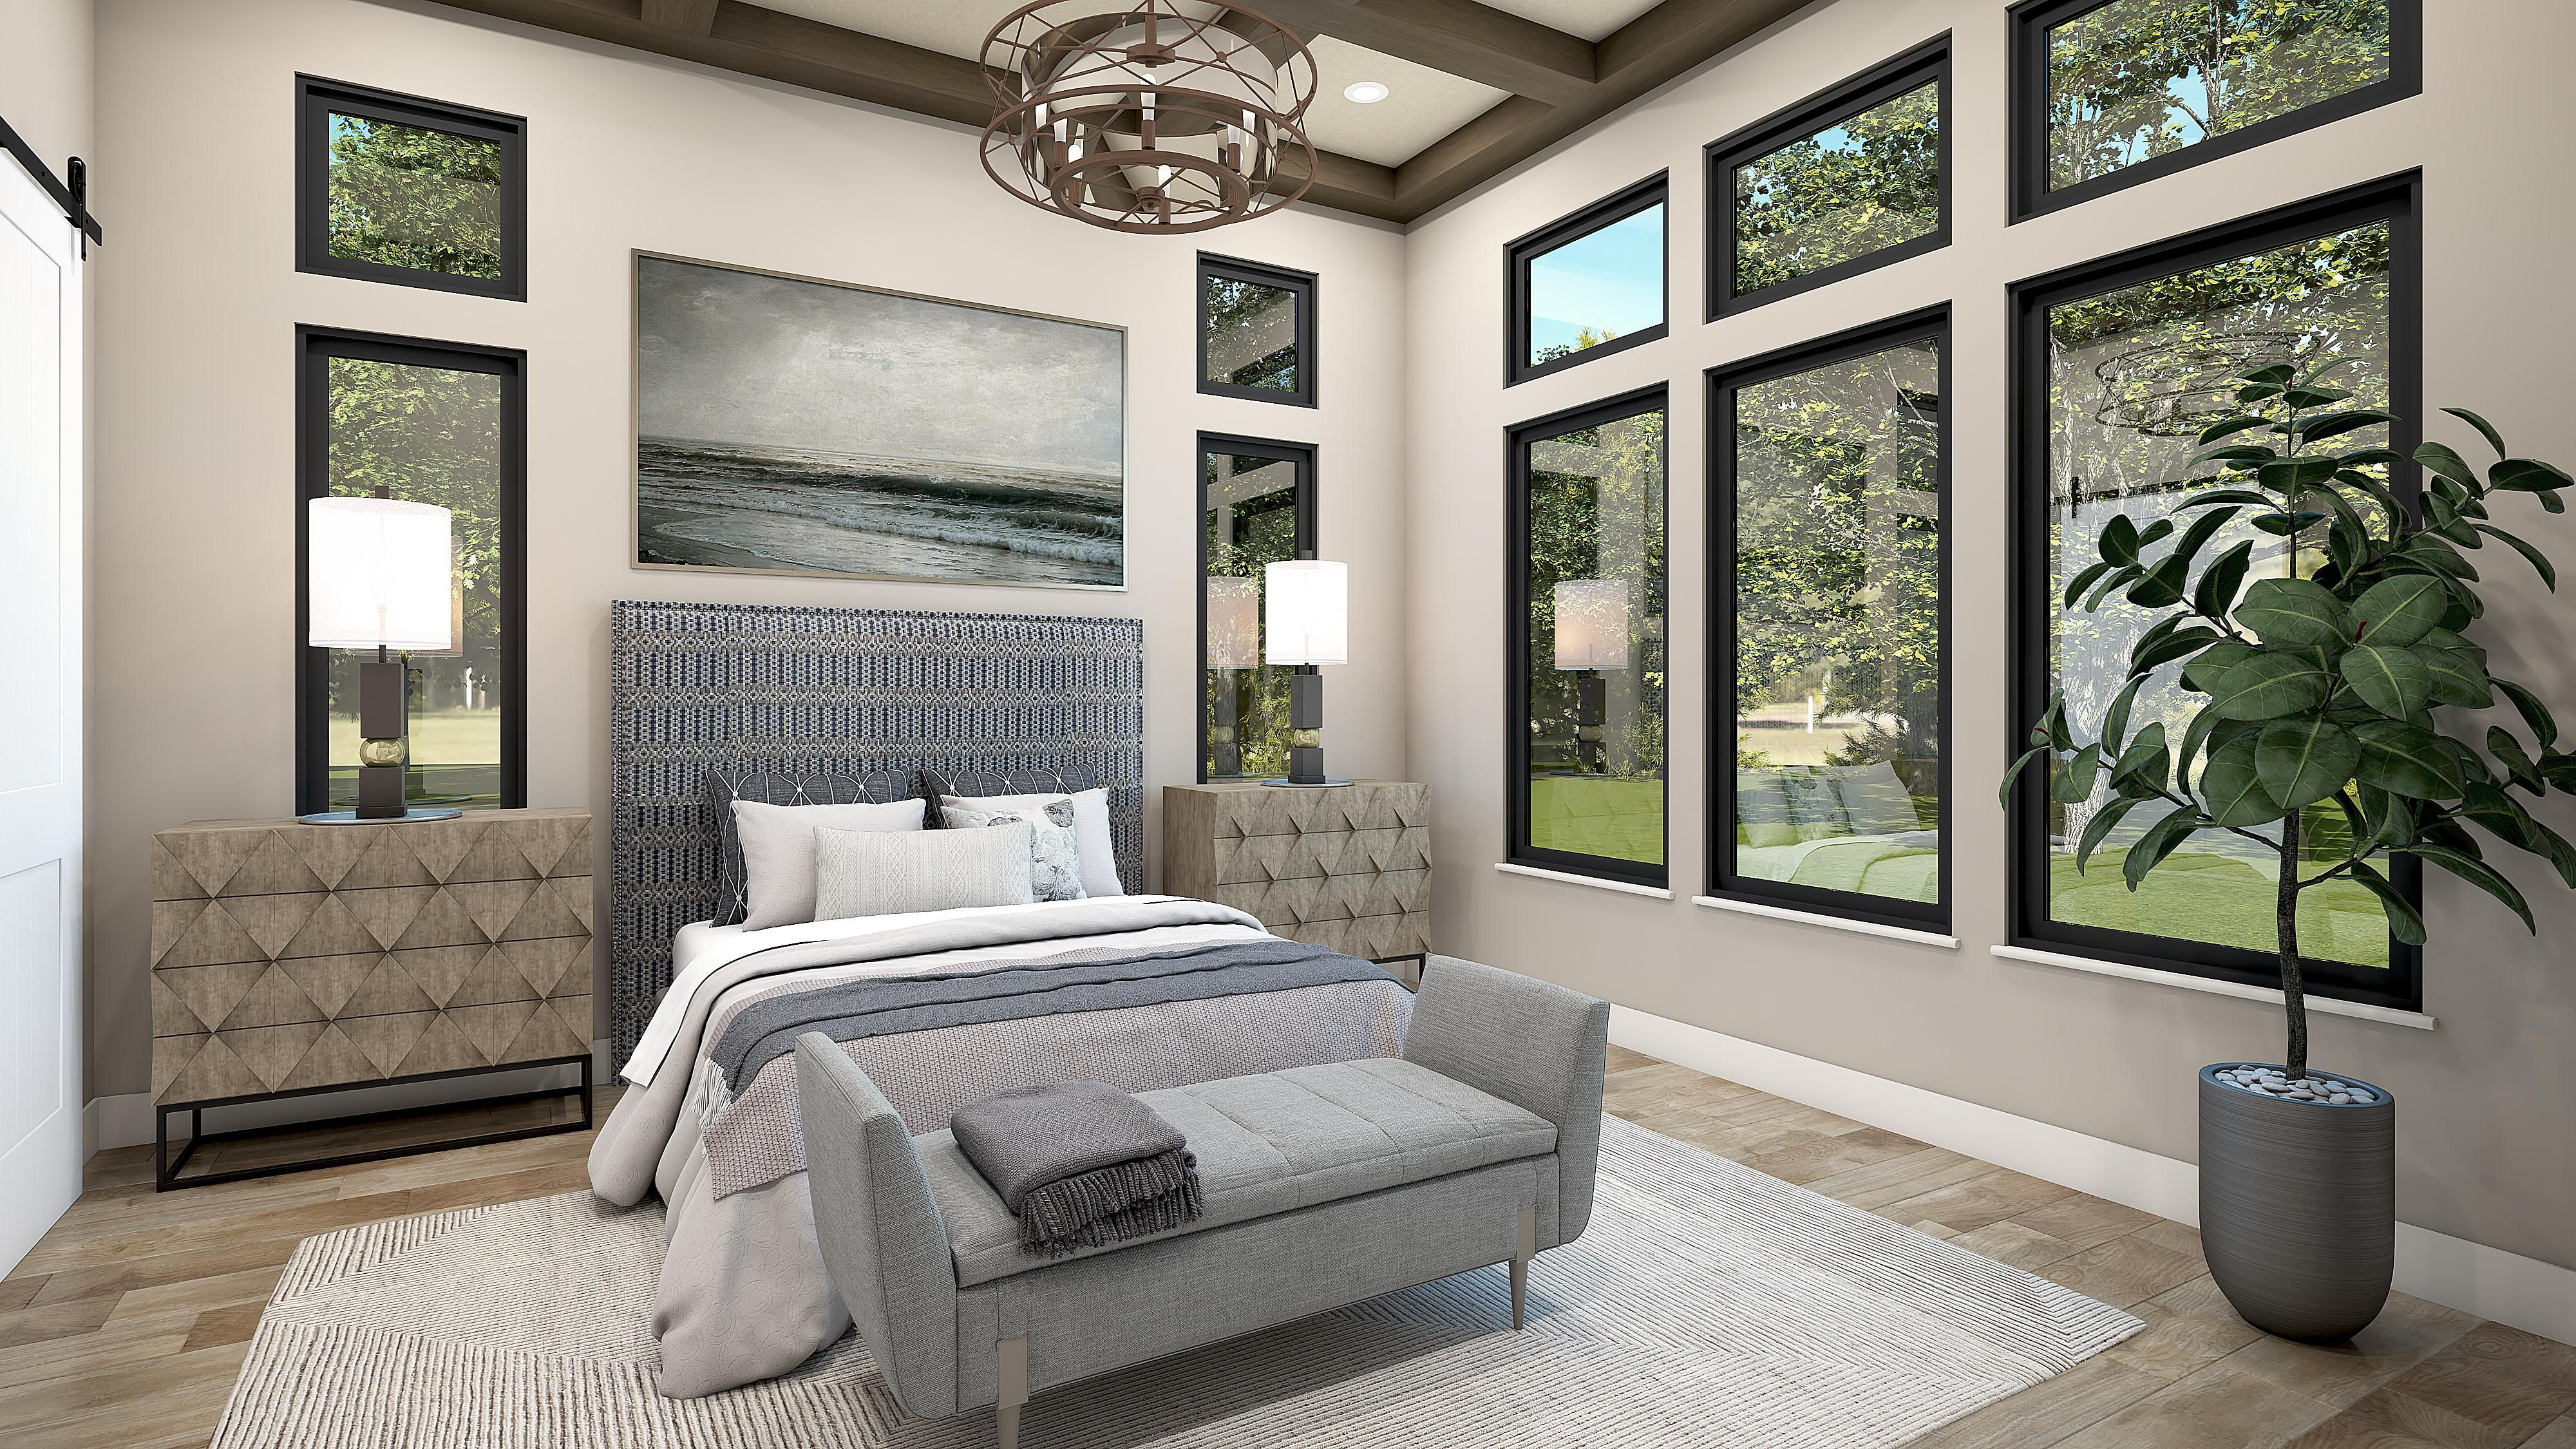 Bedroom featured in the Plan 1-B By Copper Valley  in Stockton-Lodi, CA